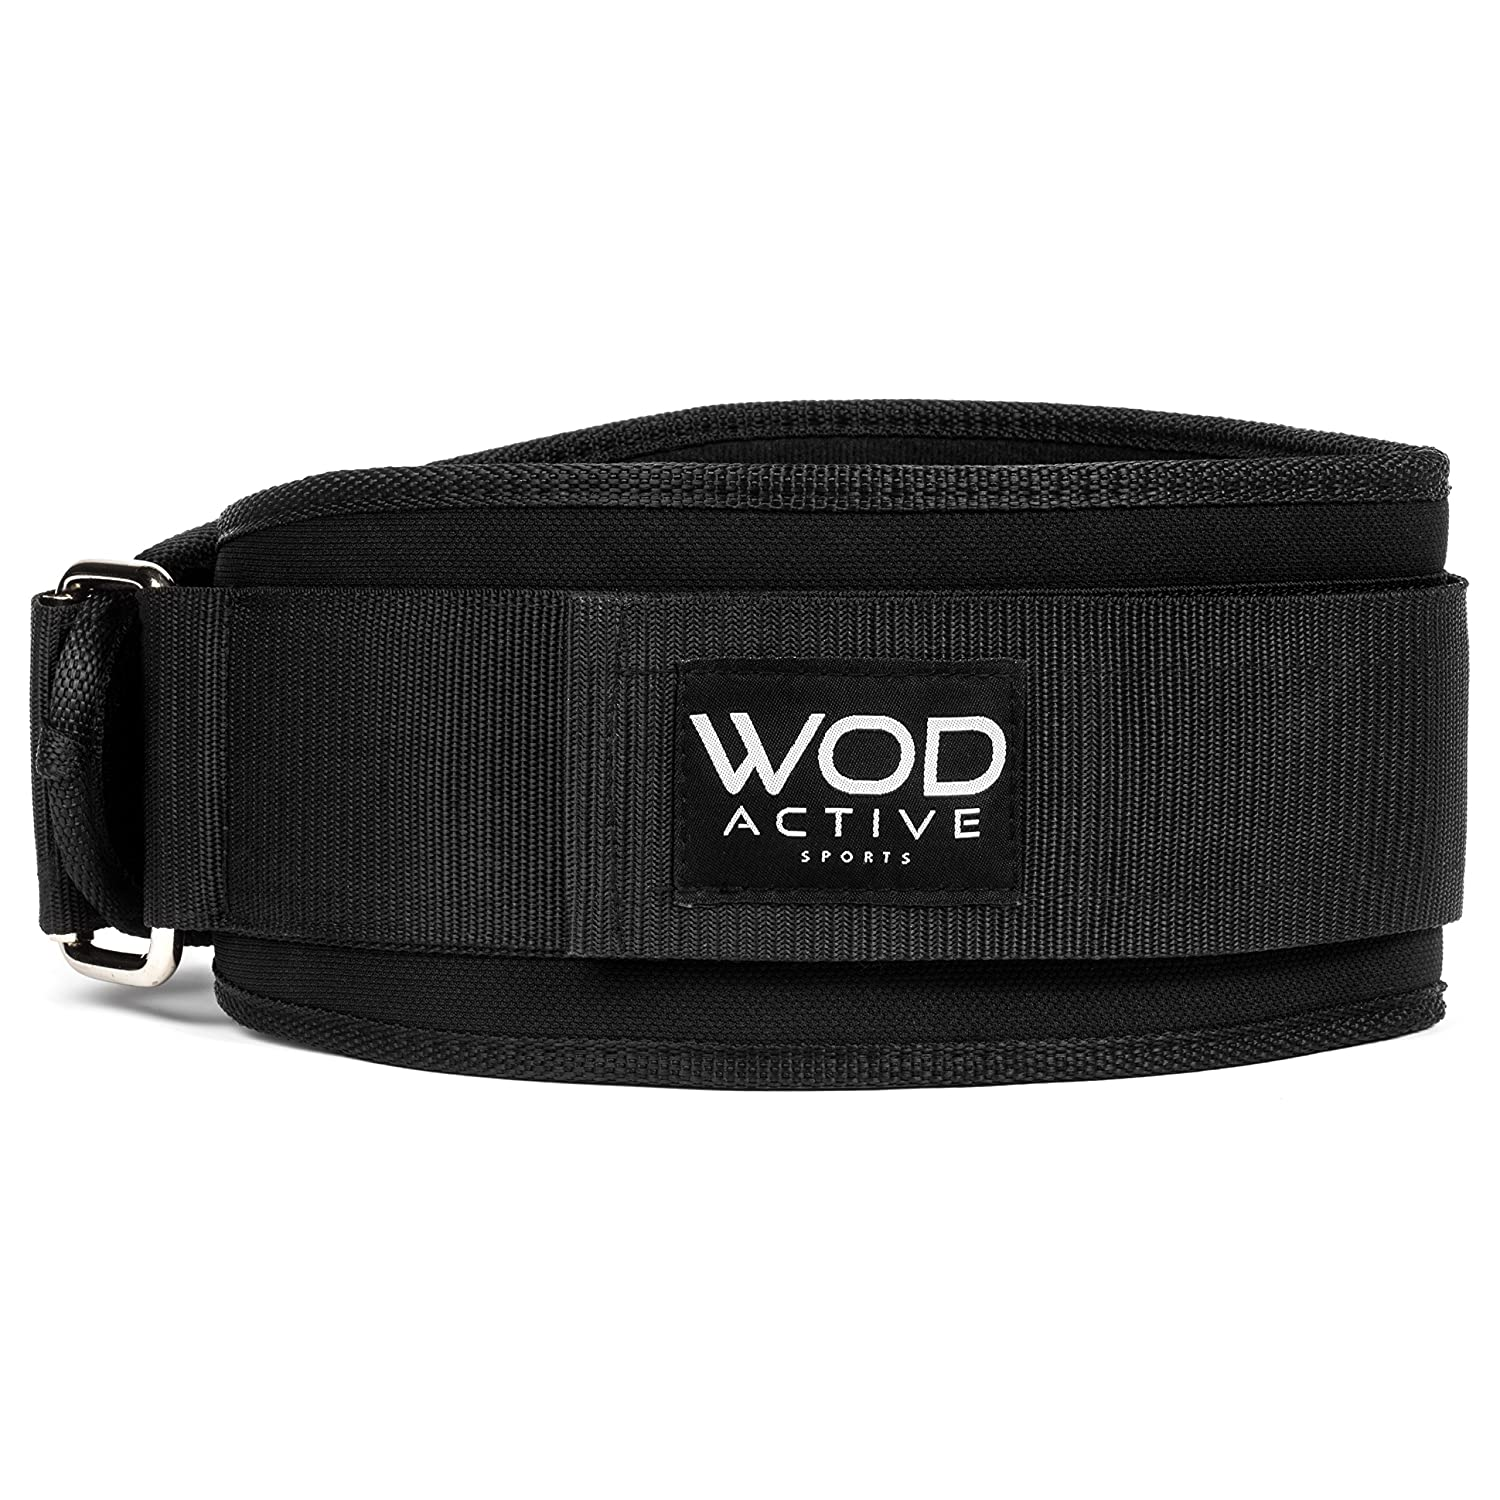 Weightlifting Belt for WODs Olympic Lifts – Lifting Belt w 4 Inch Back Support